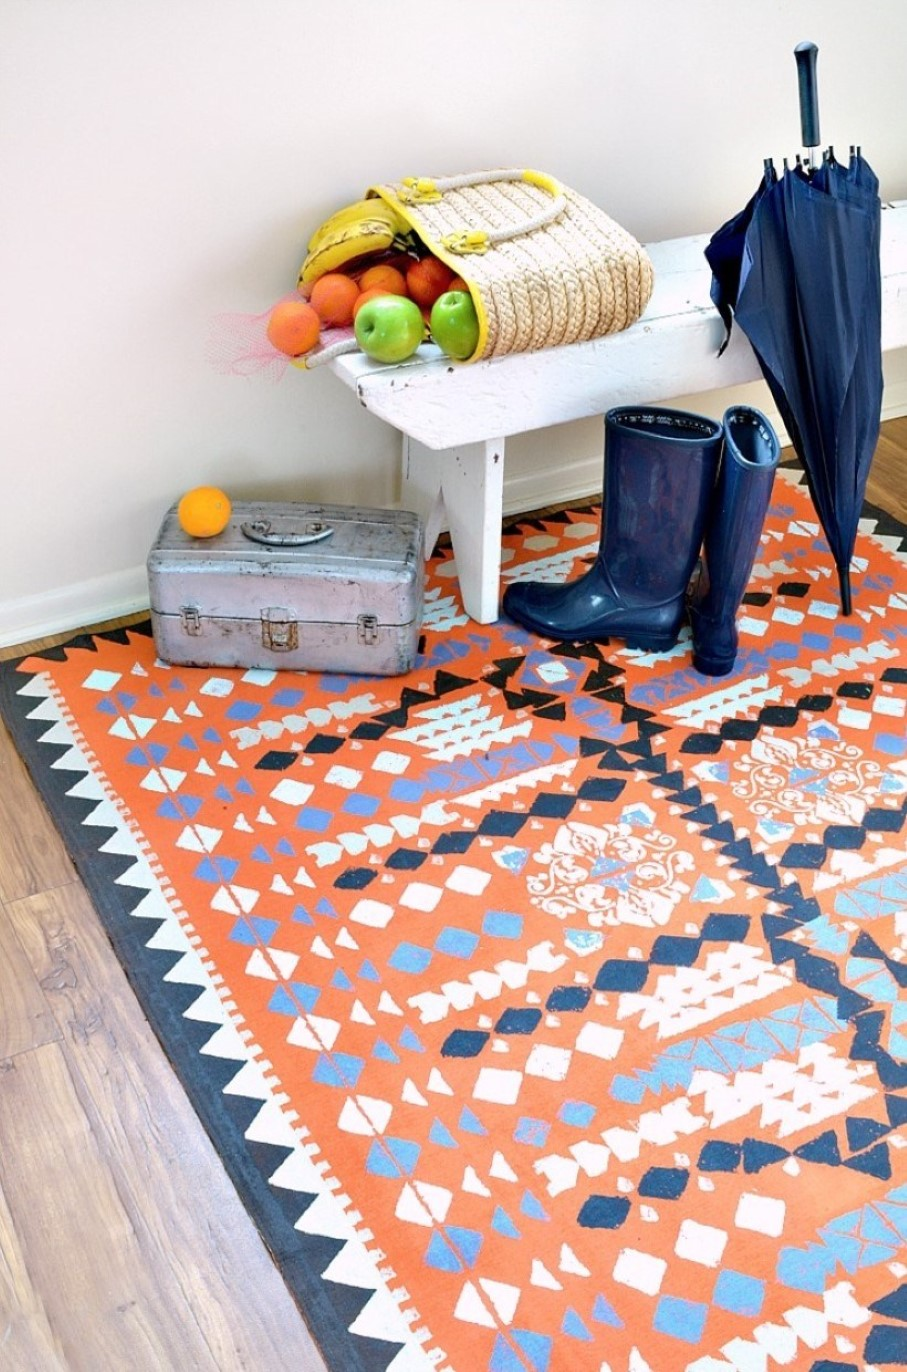 Stunning Patterned Bohemian Diy Floor Rug Design With Orange And Navy Blue  Design With White Wooden